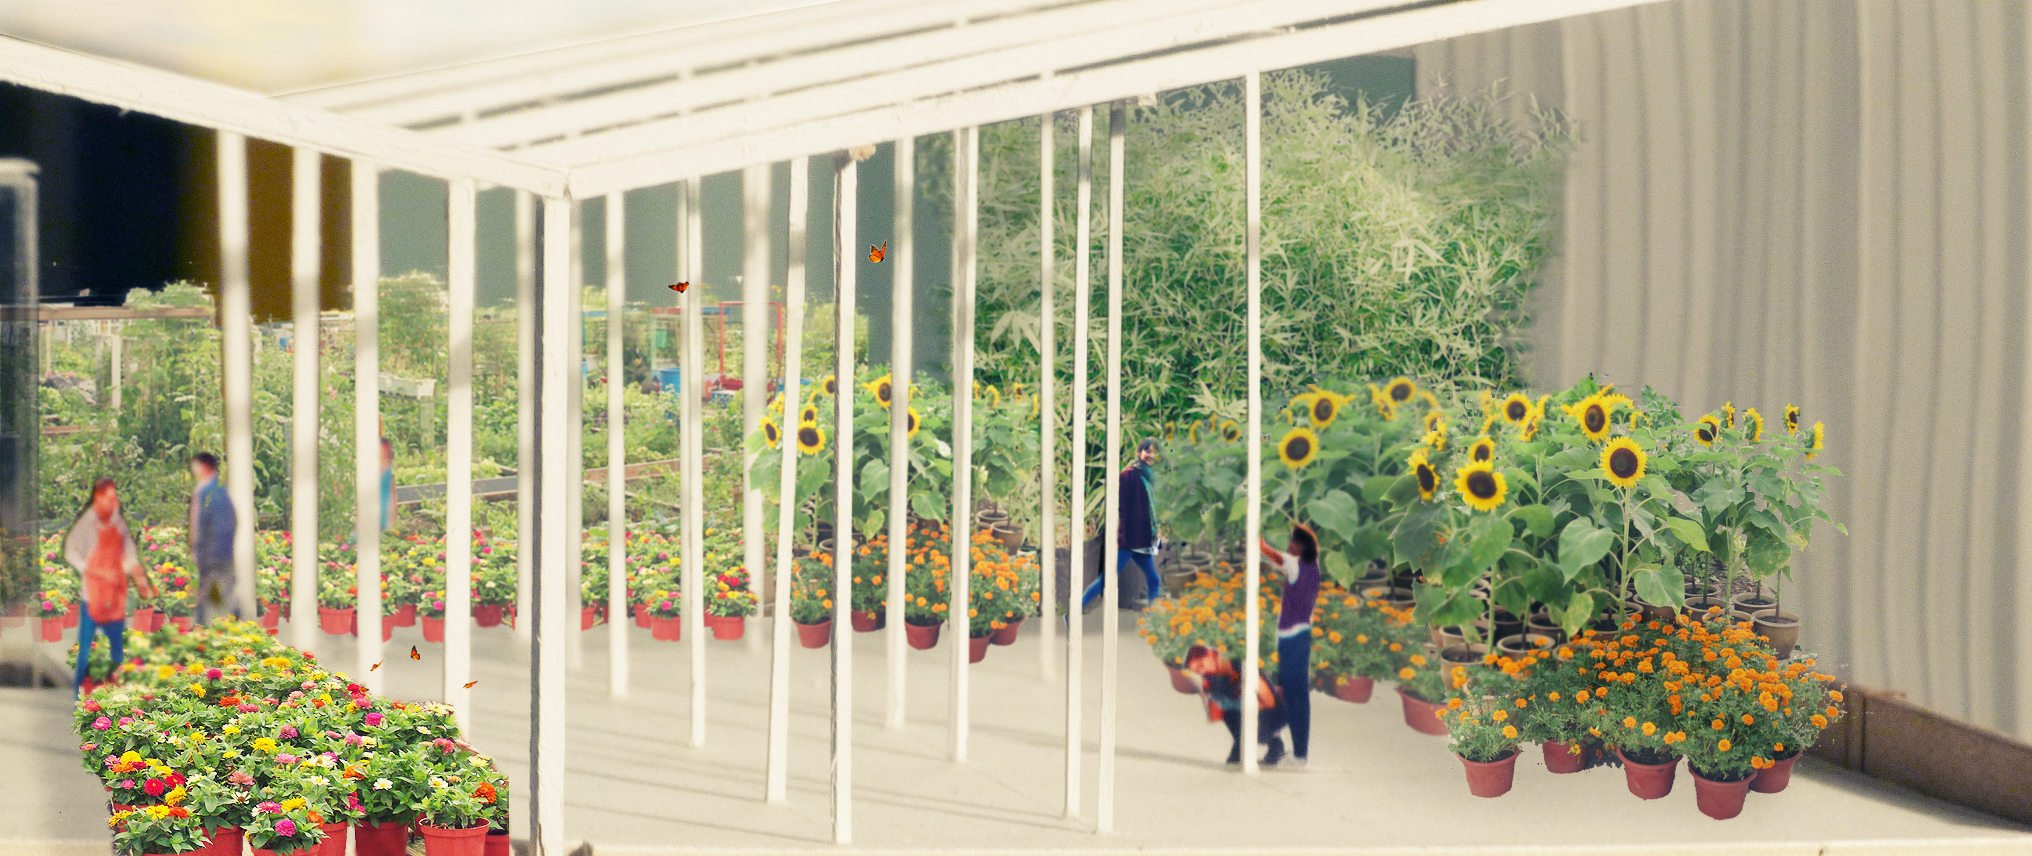 greenhouse render copy